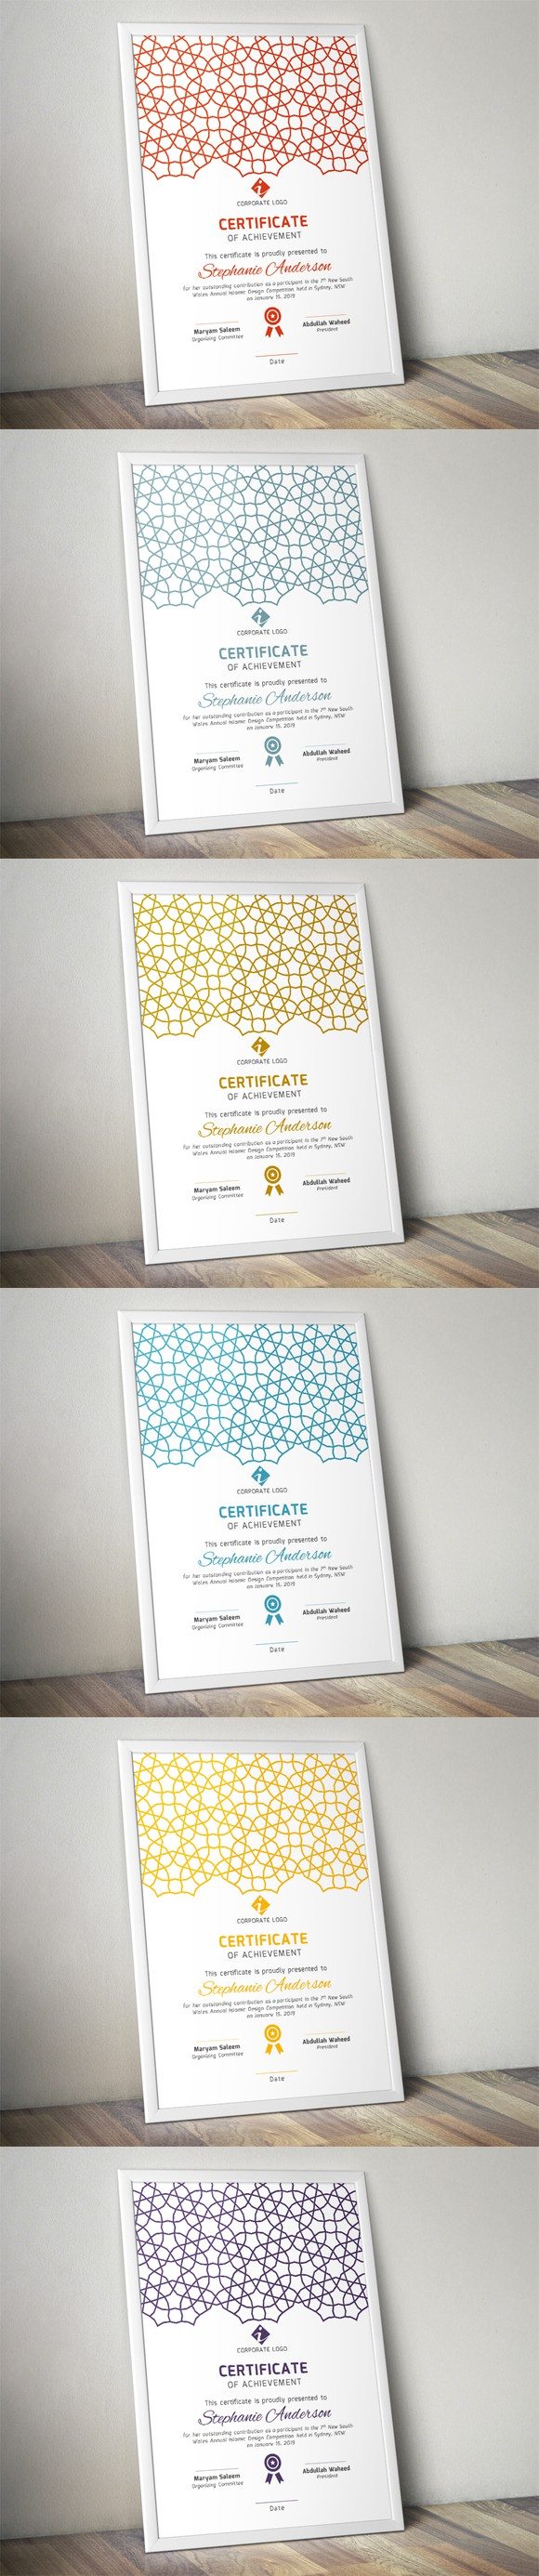 Islamic certificate template (docx). Stationery Templates. $5.00 ...